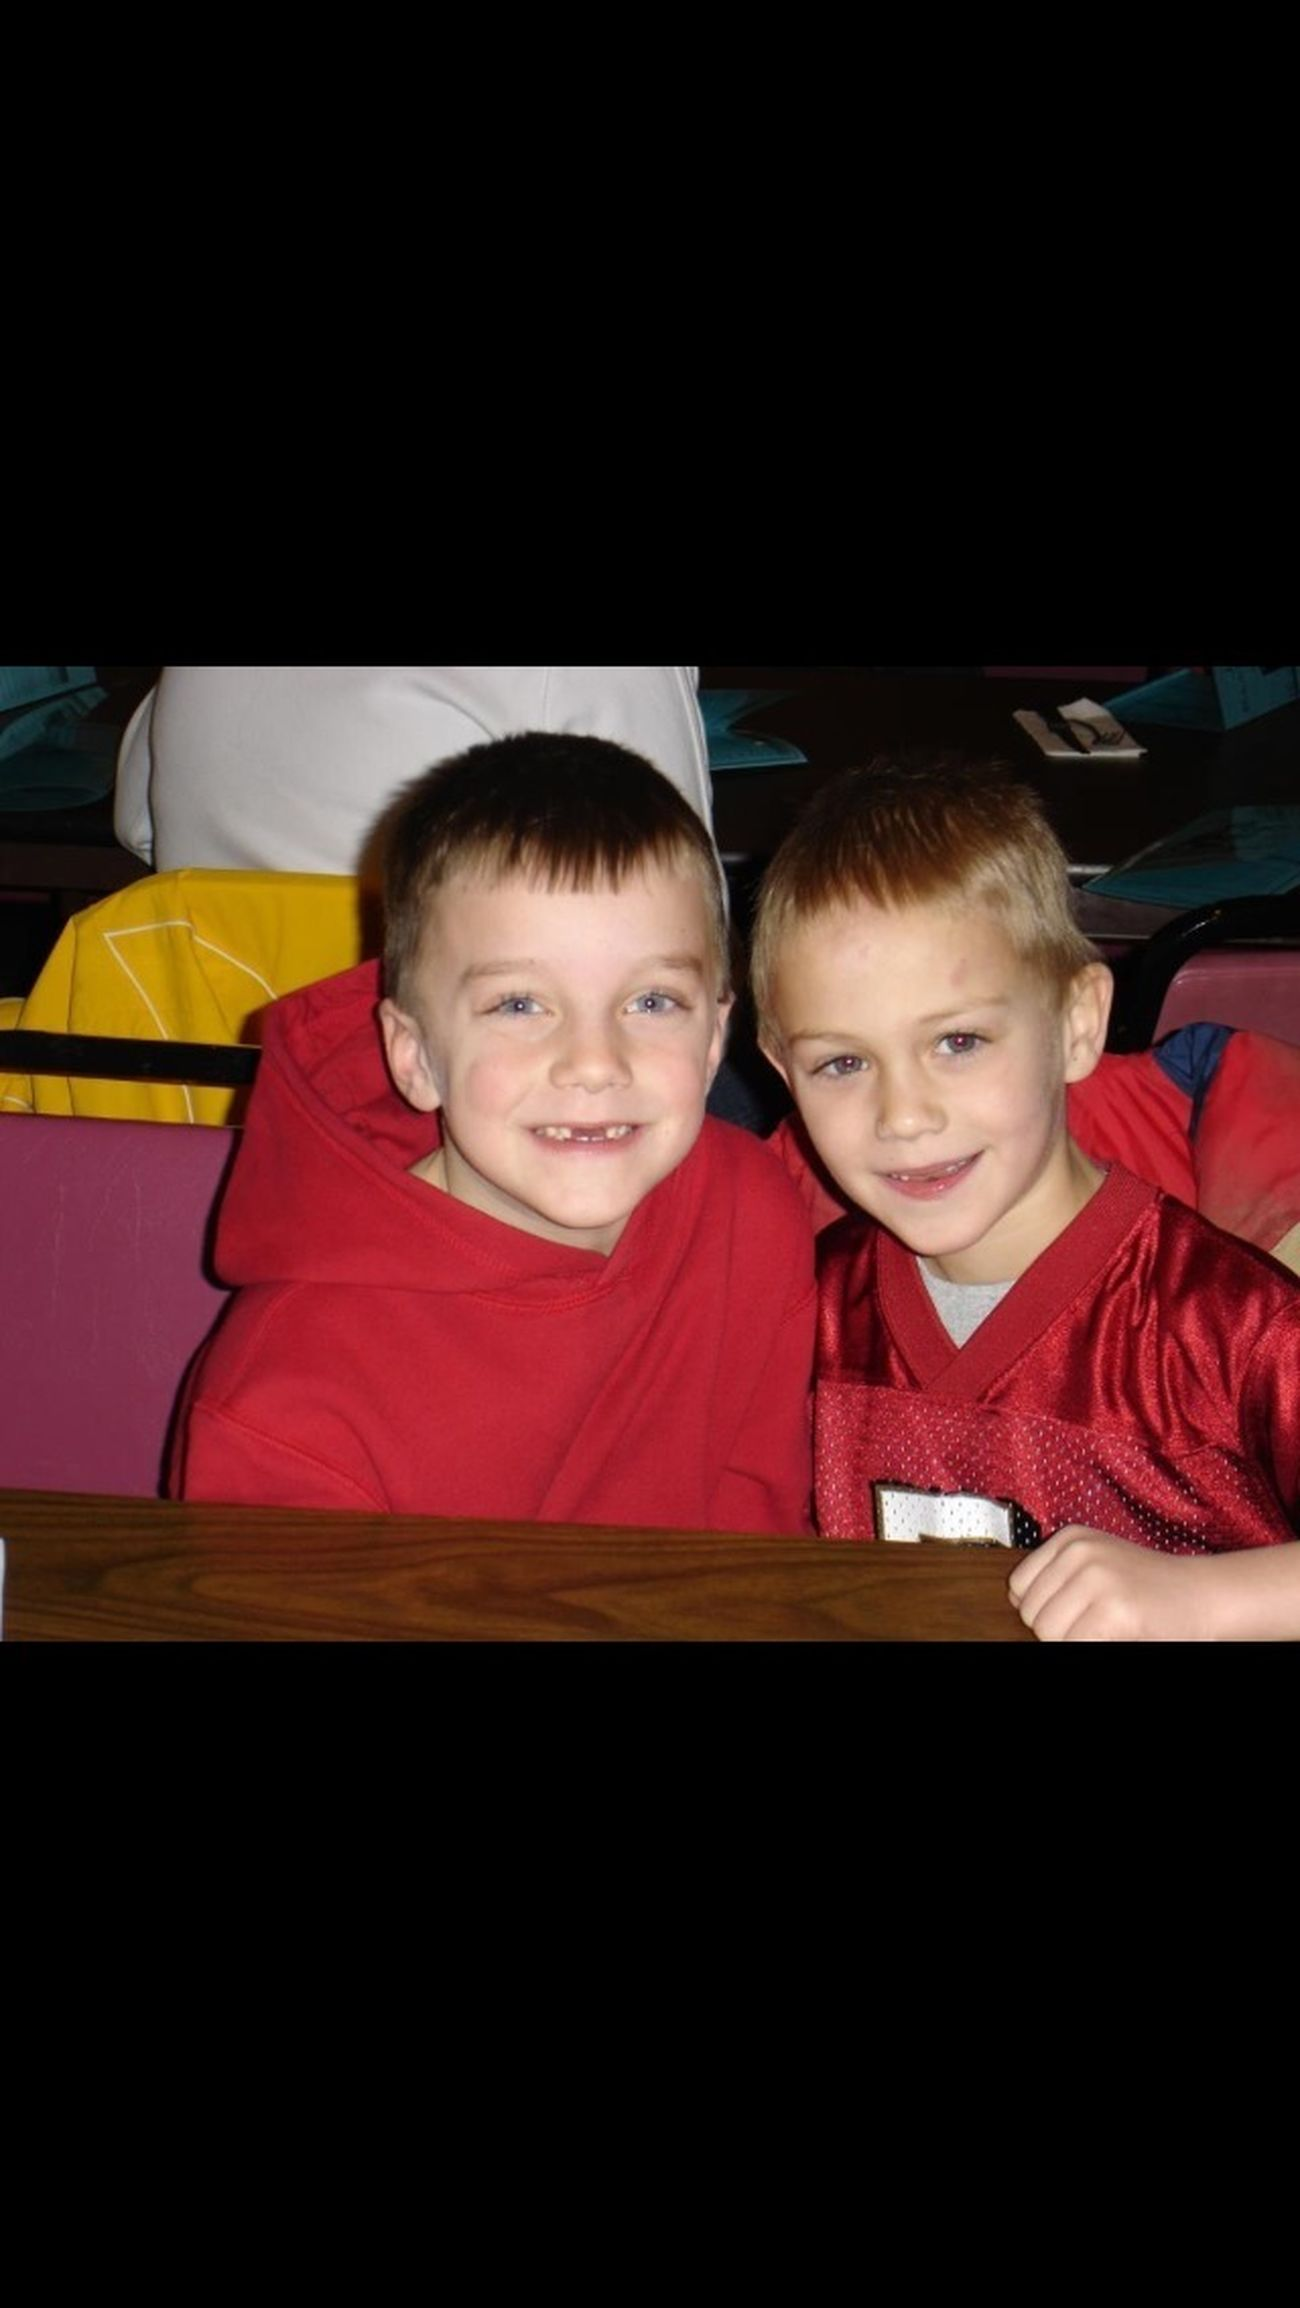 Me And Adam In 1st Grade